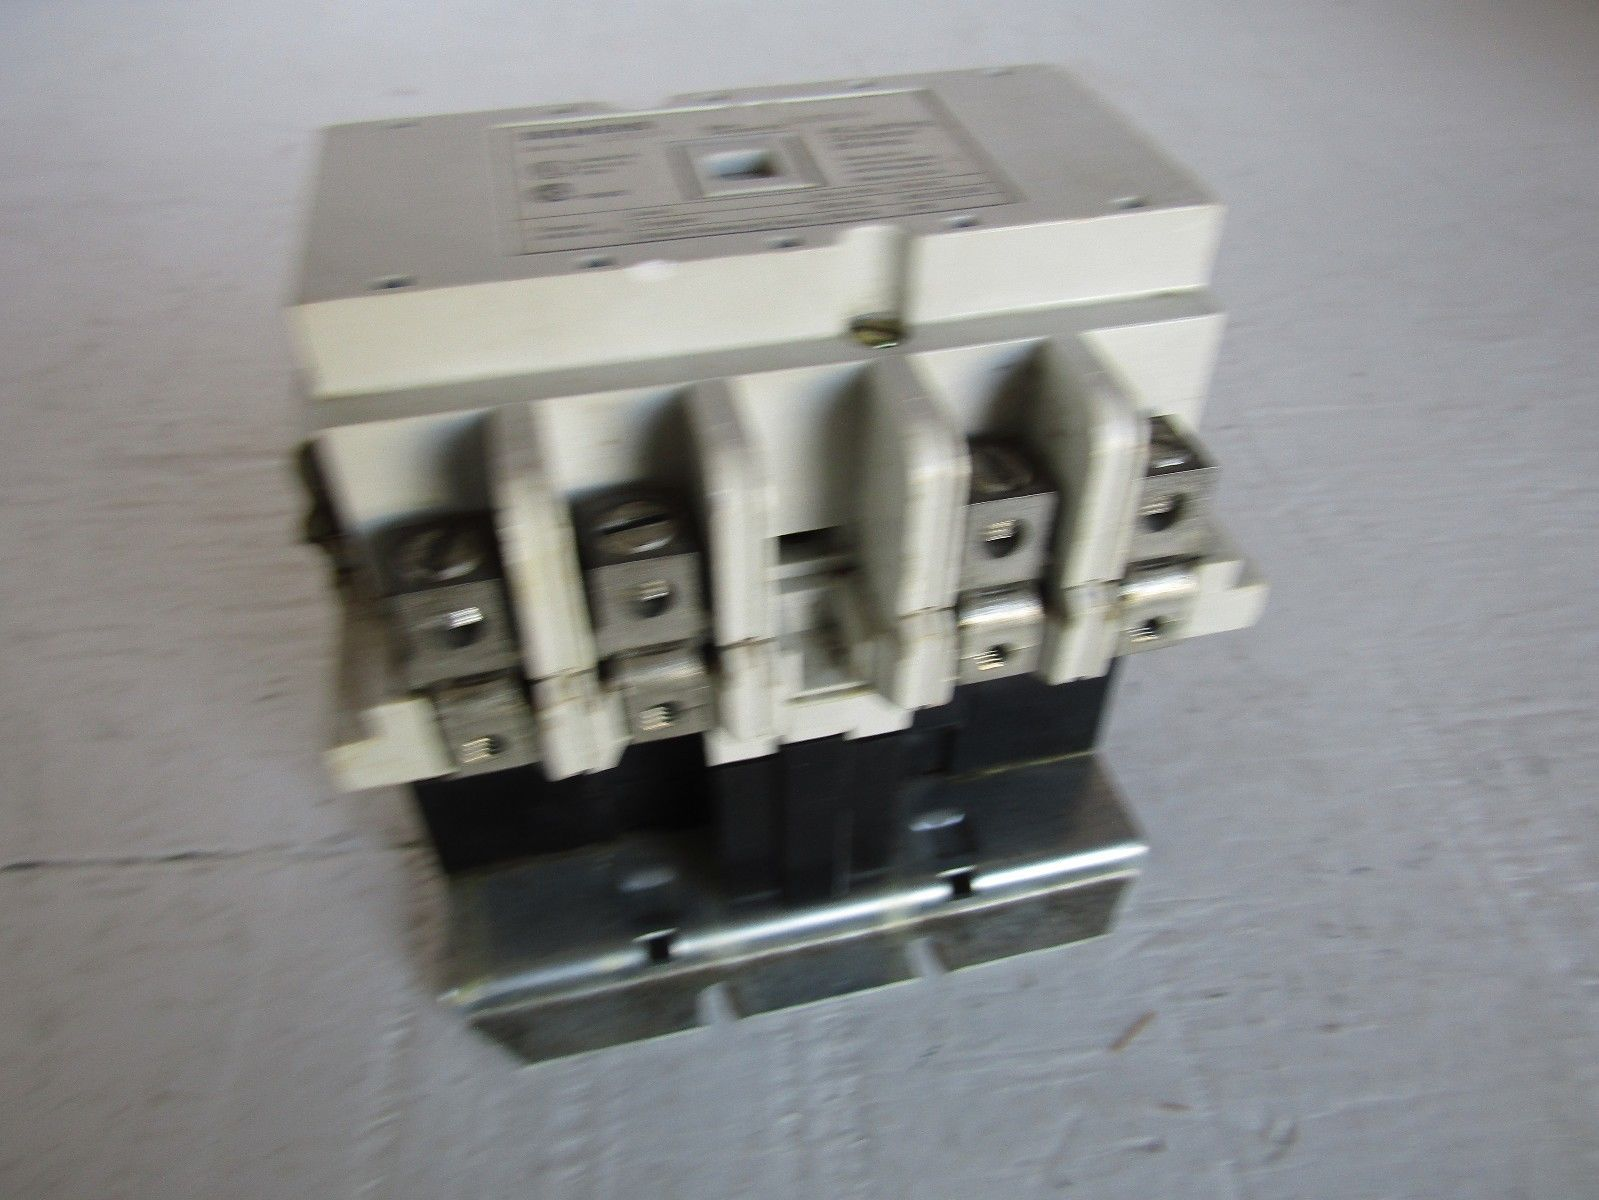 New Siemens Clm0d04 4 Pole 60a Lighting And Heating Contactor 120v Coil